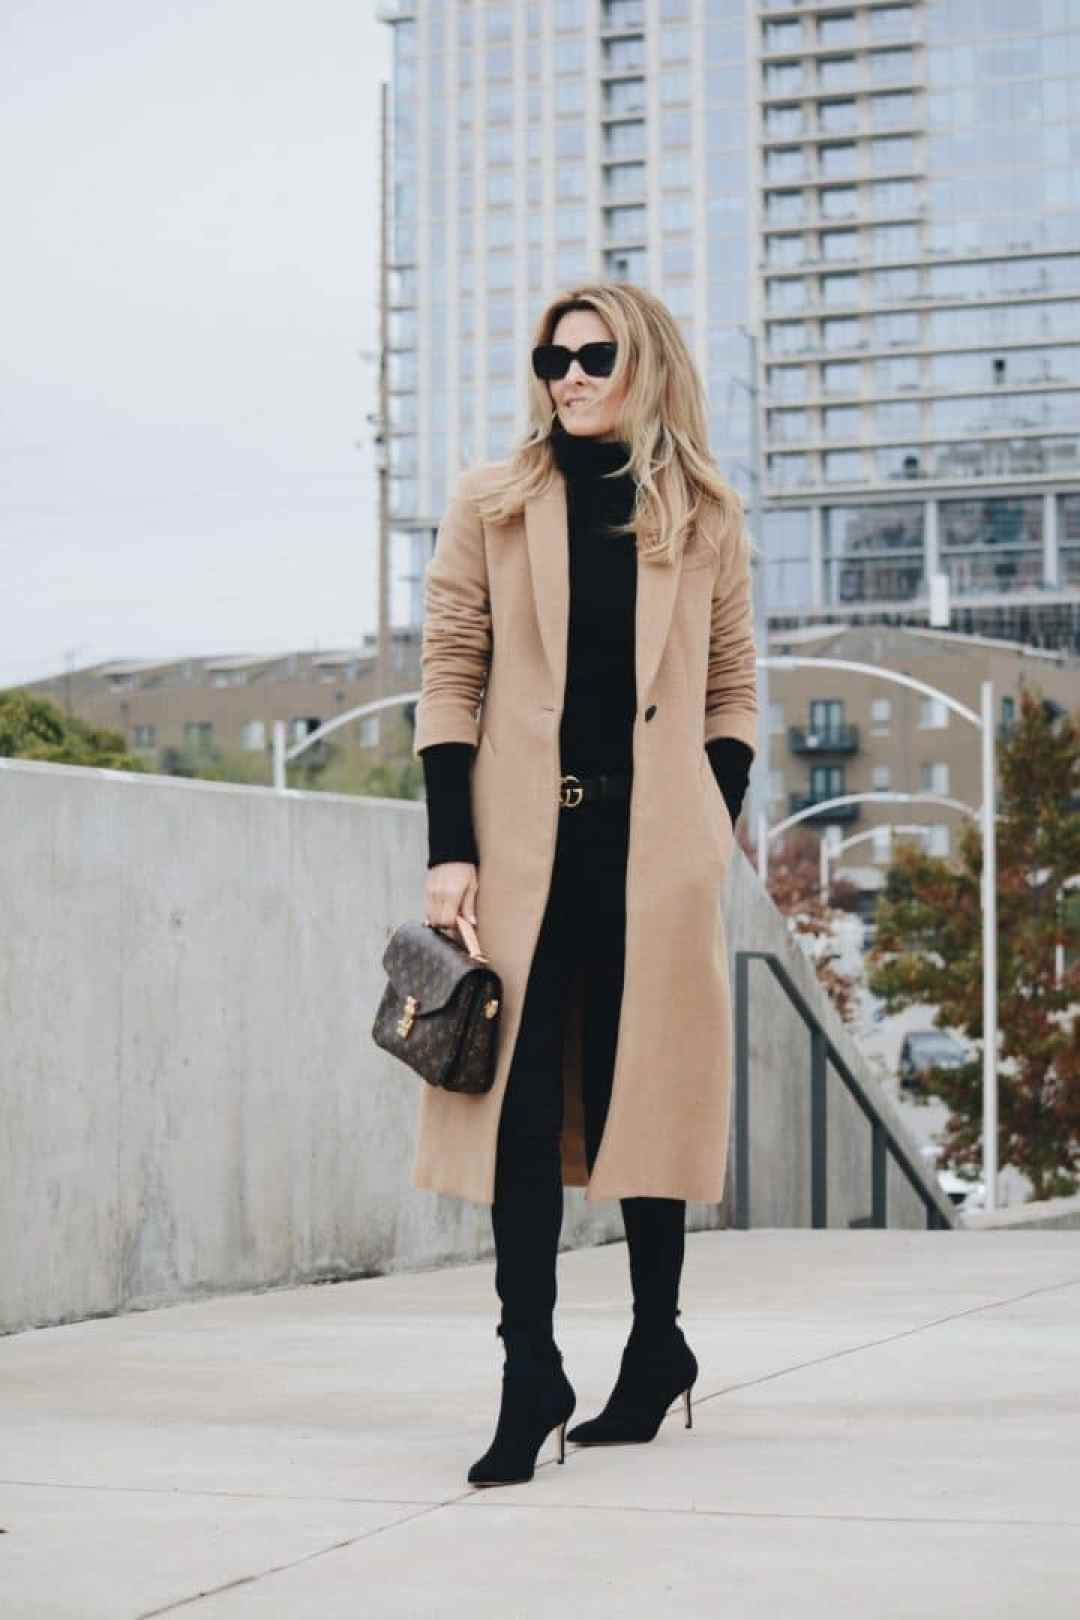 Rag & Bone Camel Coat styled with Black Sweater, Denim, Louis Vuitton Bag & Sock Booties - Her Fashioned Life